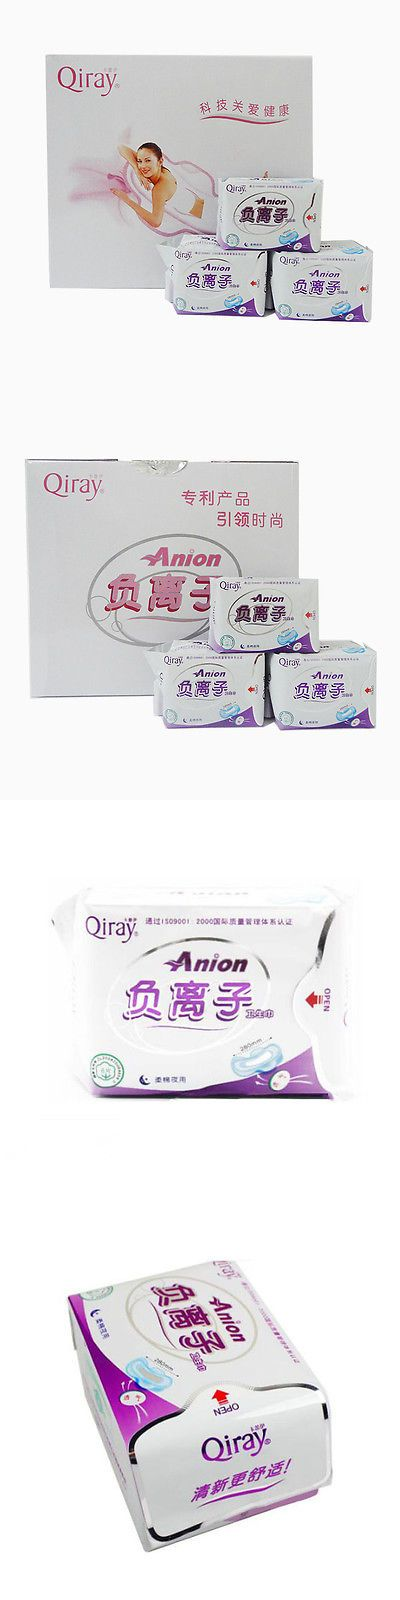 Sanitary Napkins: 19 Packages Winalite Qiray Anion Sanitary Napkins No Fluorescent Agent Night Use BUY IT NOW ONLY: $75.85